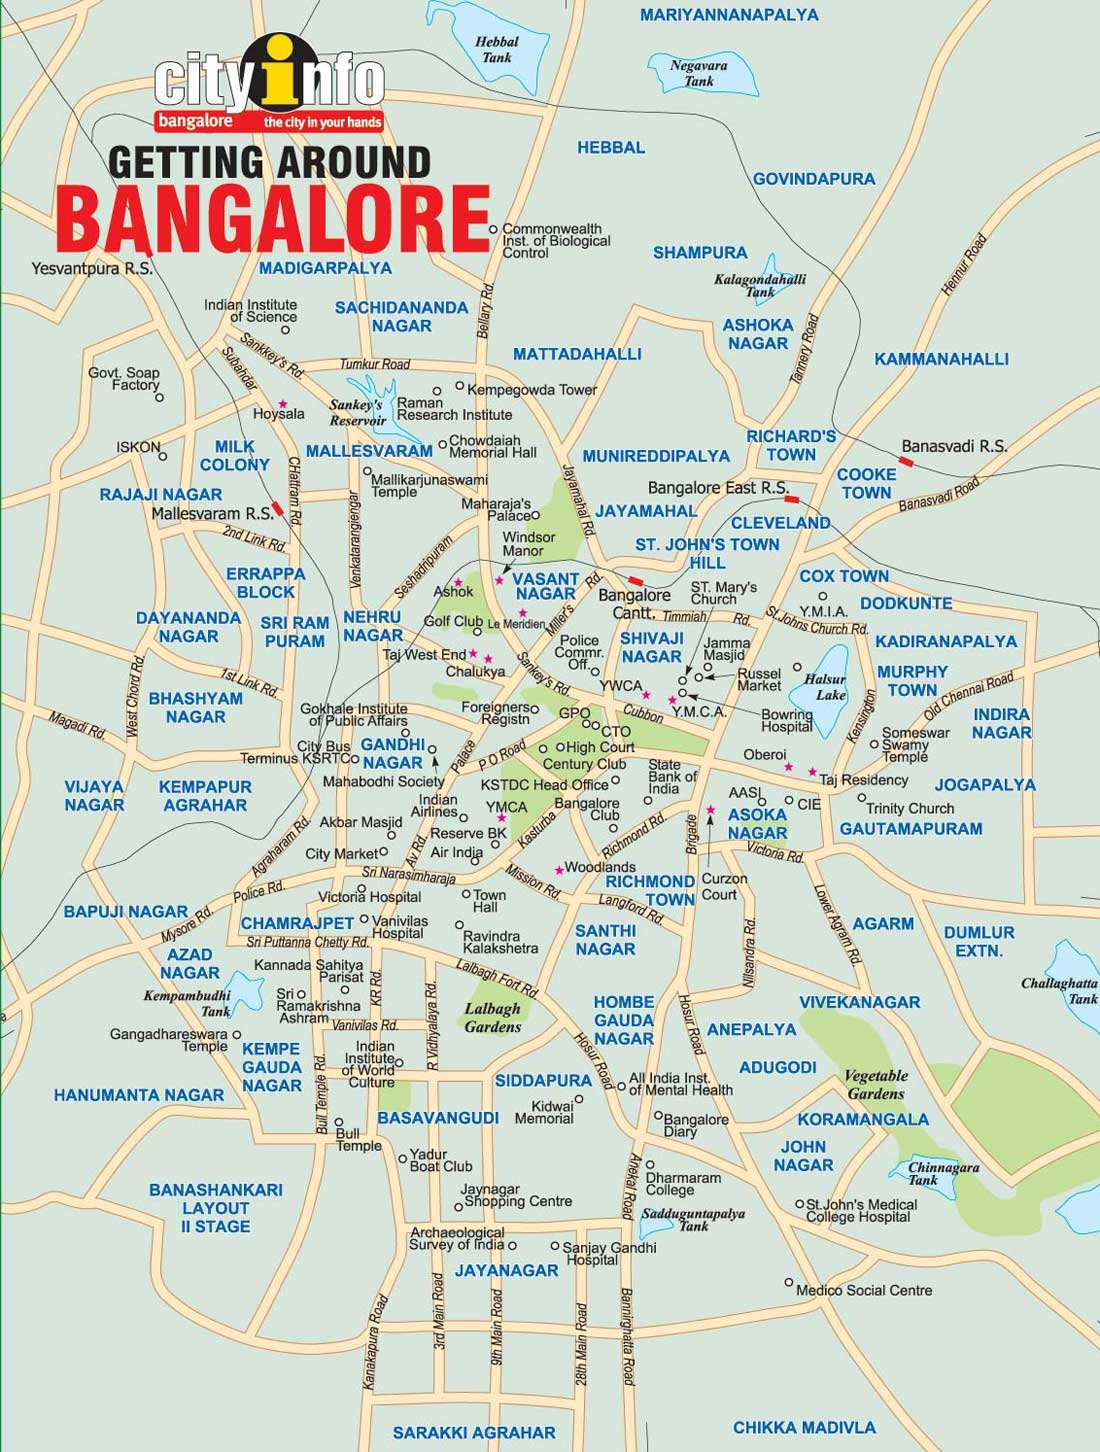 Bhopal maps. Click on the Map of Bangalore to view it full screen